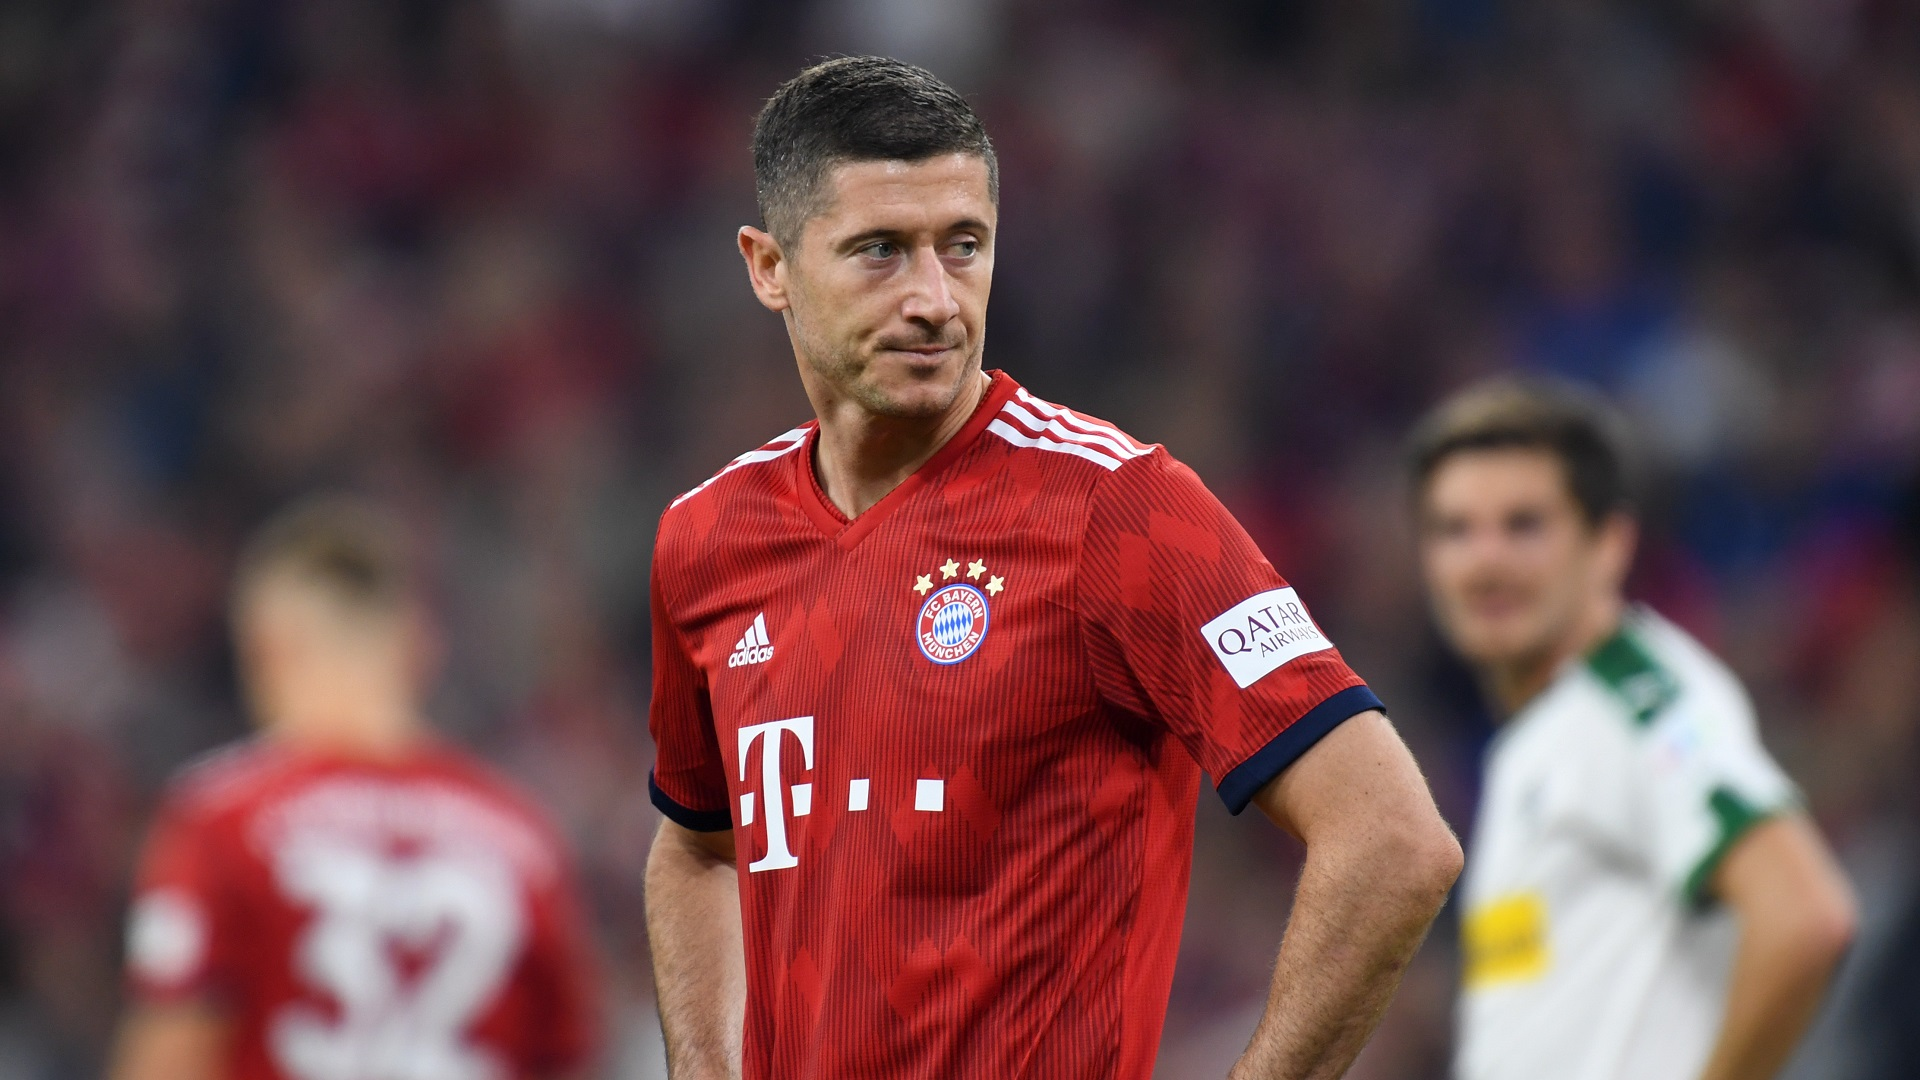 Wolfsburg 1-3 Bayern Munich: Robert Lewandowski helps champions end winless run